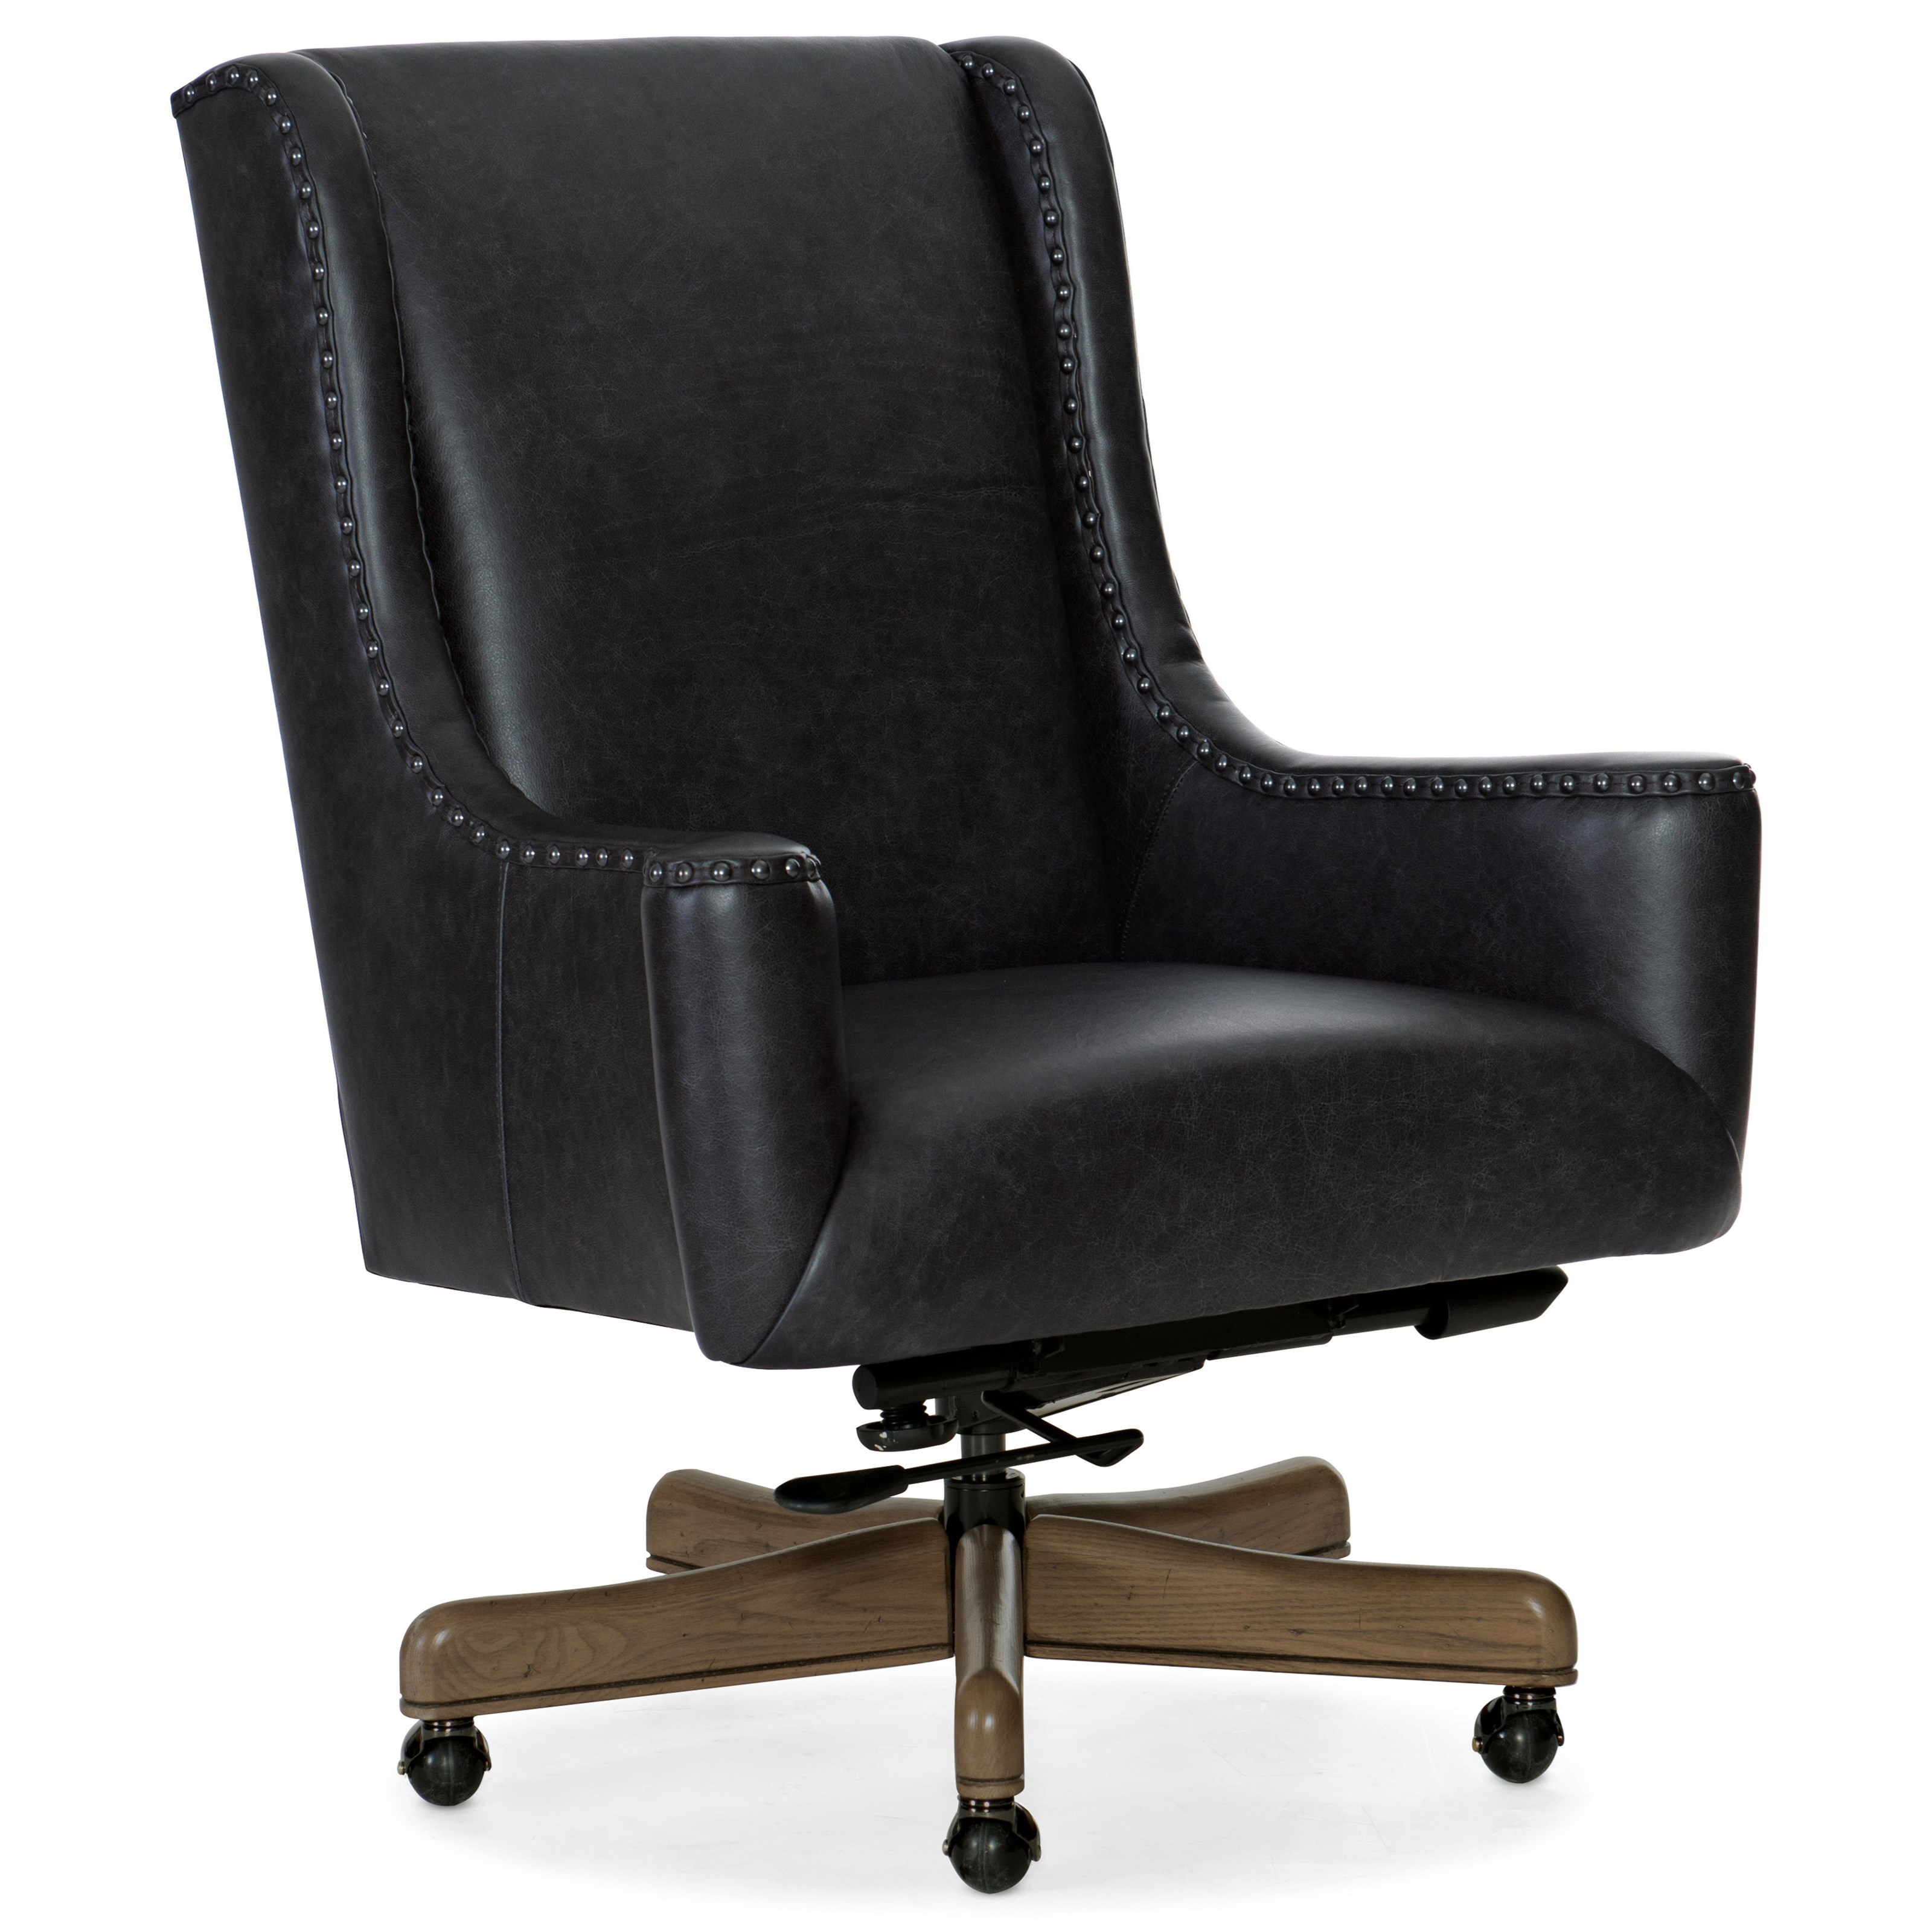 Executive Seating Lily Executive Swivel Tilt Chair by Hooker Furniture at Baer's Furniture